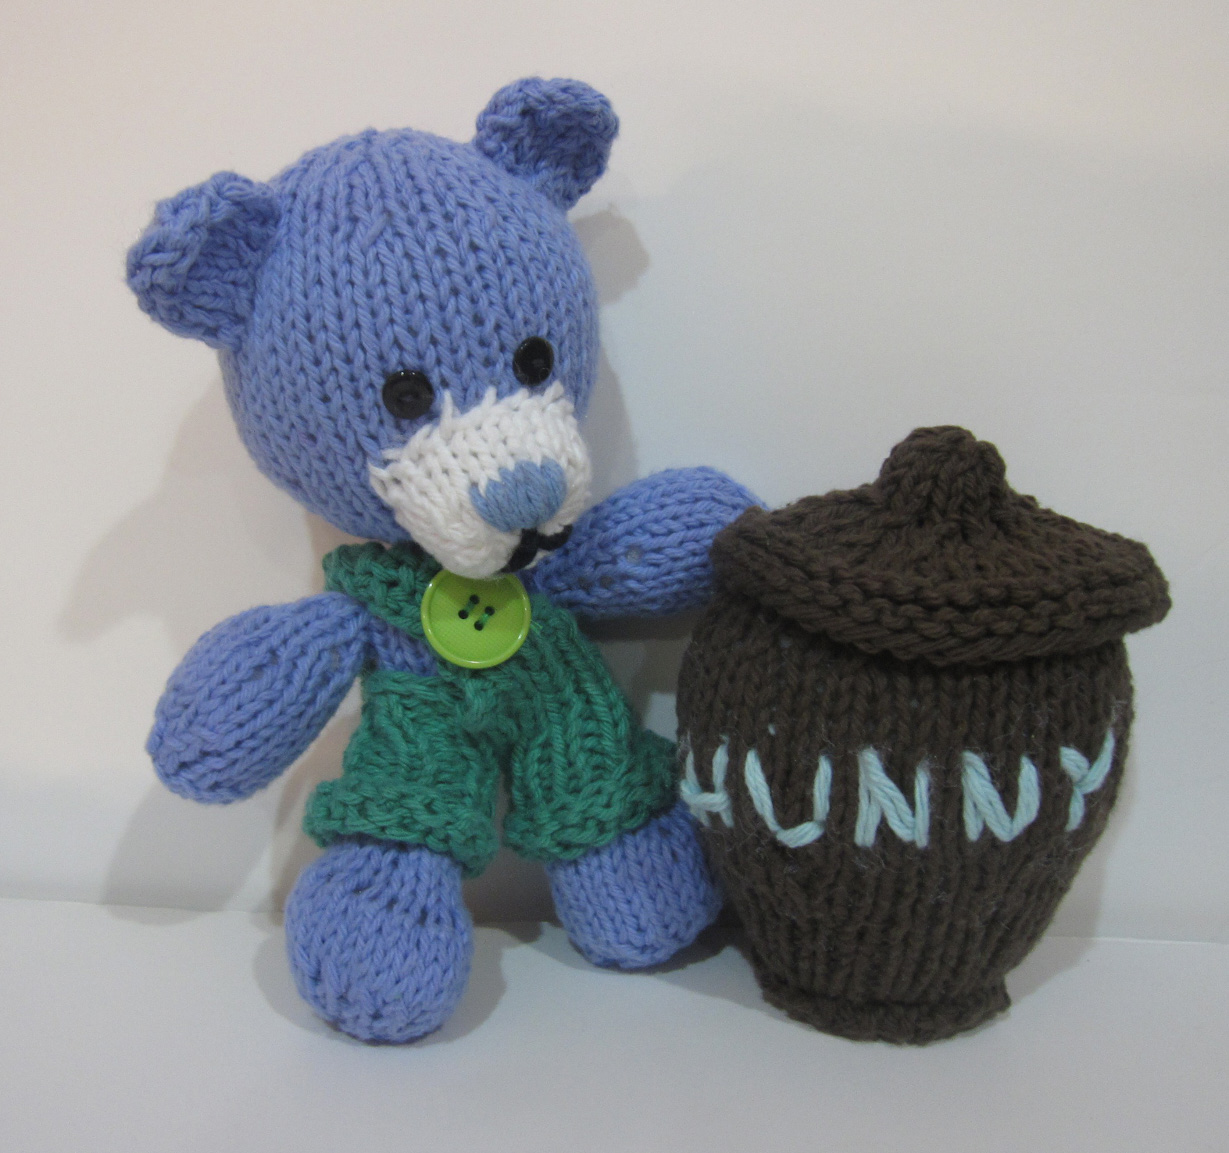 Bears Tea Cozy And Knitkinz